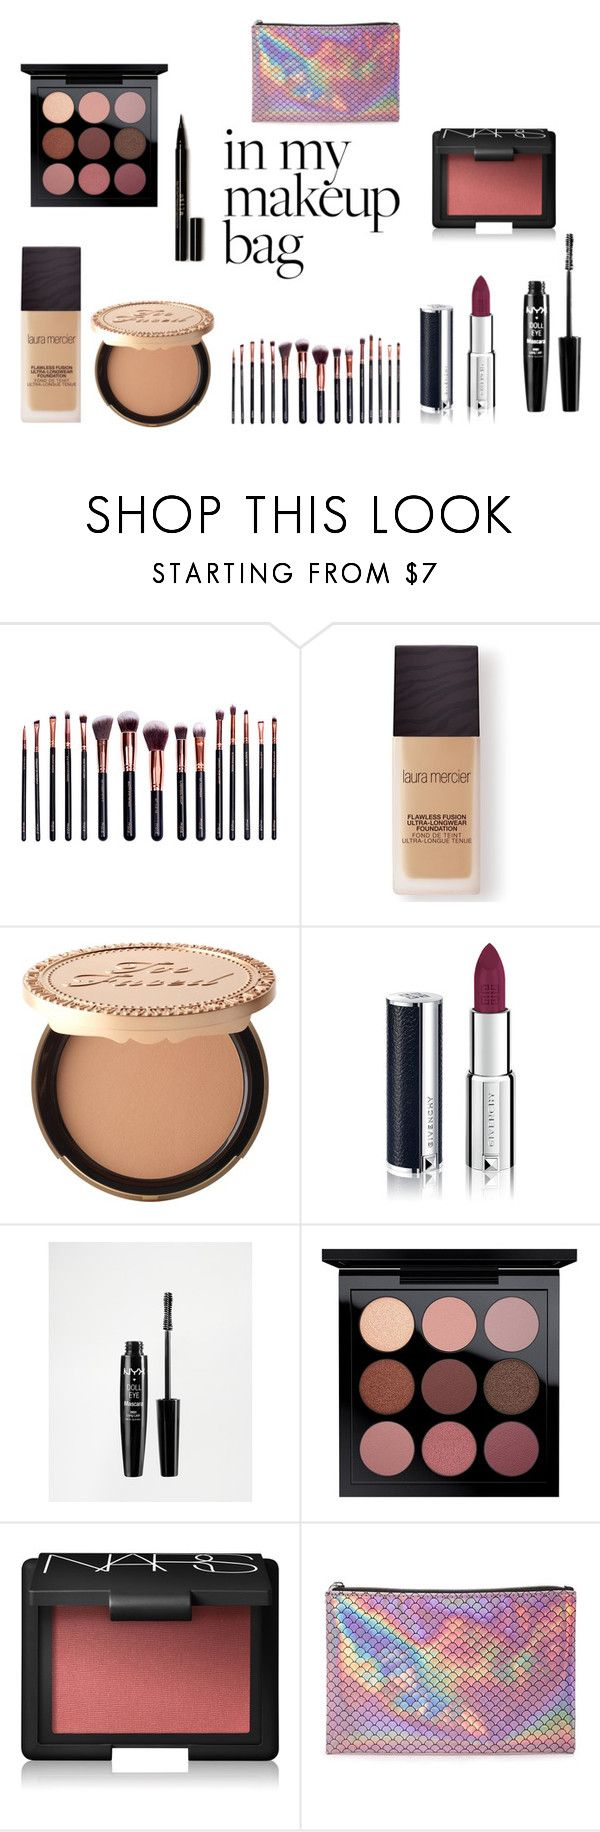 """in my makeup bag"" by kikiluv05 on Polyvore featuring beauty, M.O.T.D Cosmetics, Laura Mercier, Too Faced Cosmetics, Givenchy, NYX, MAC Cosmetics, NARS Cosmetics, Forever 21 and Stila"